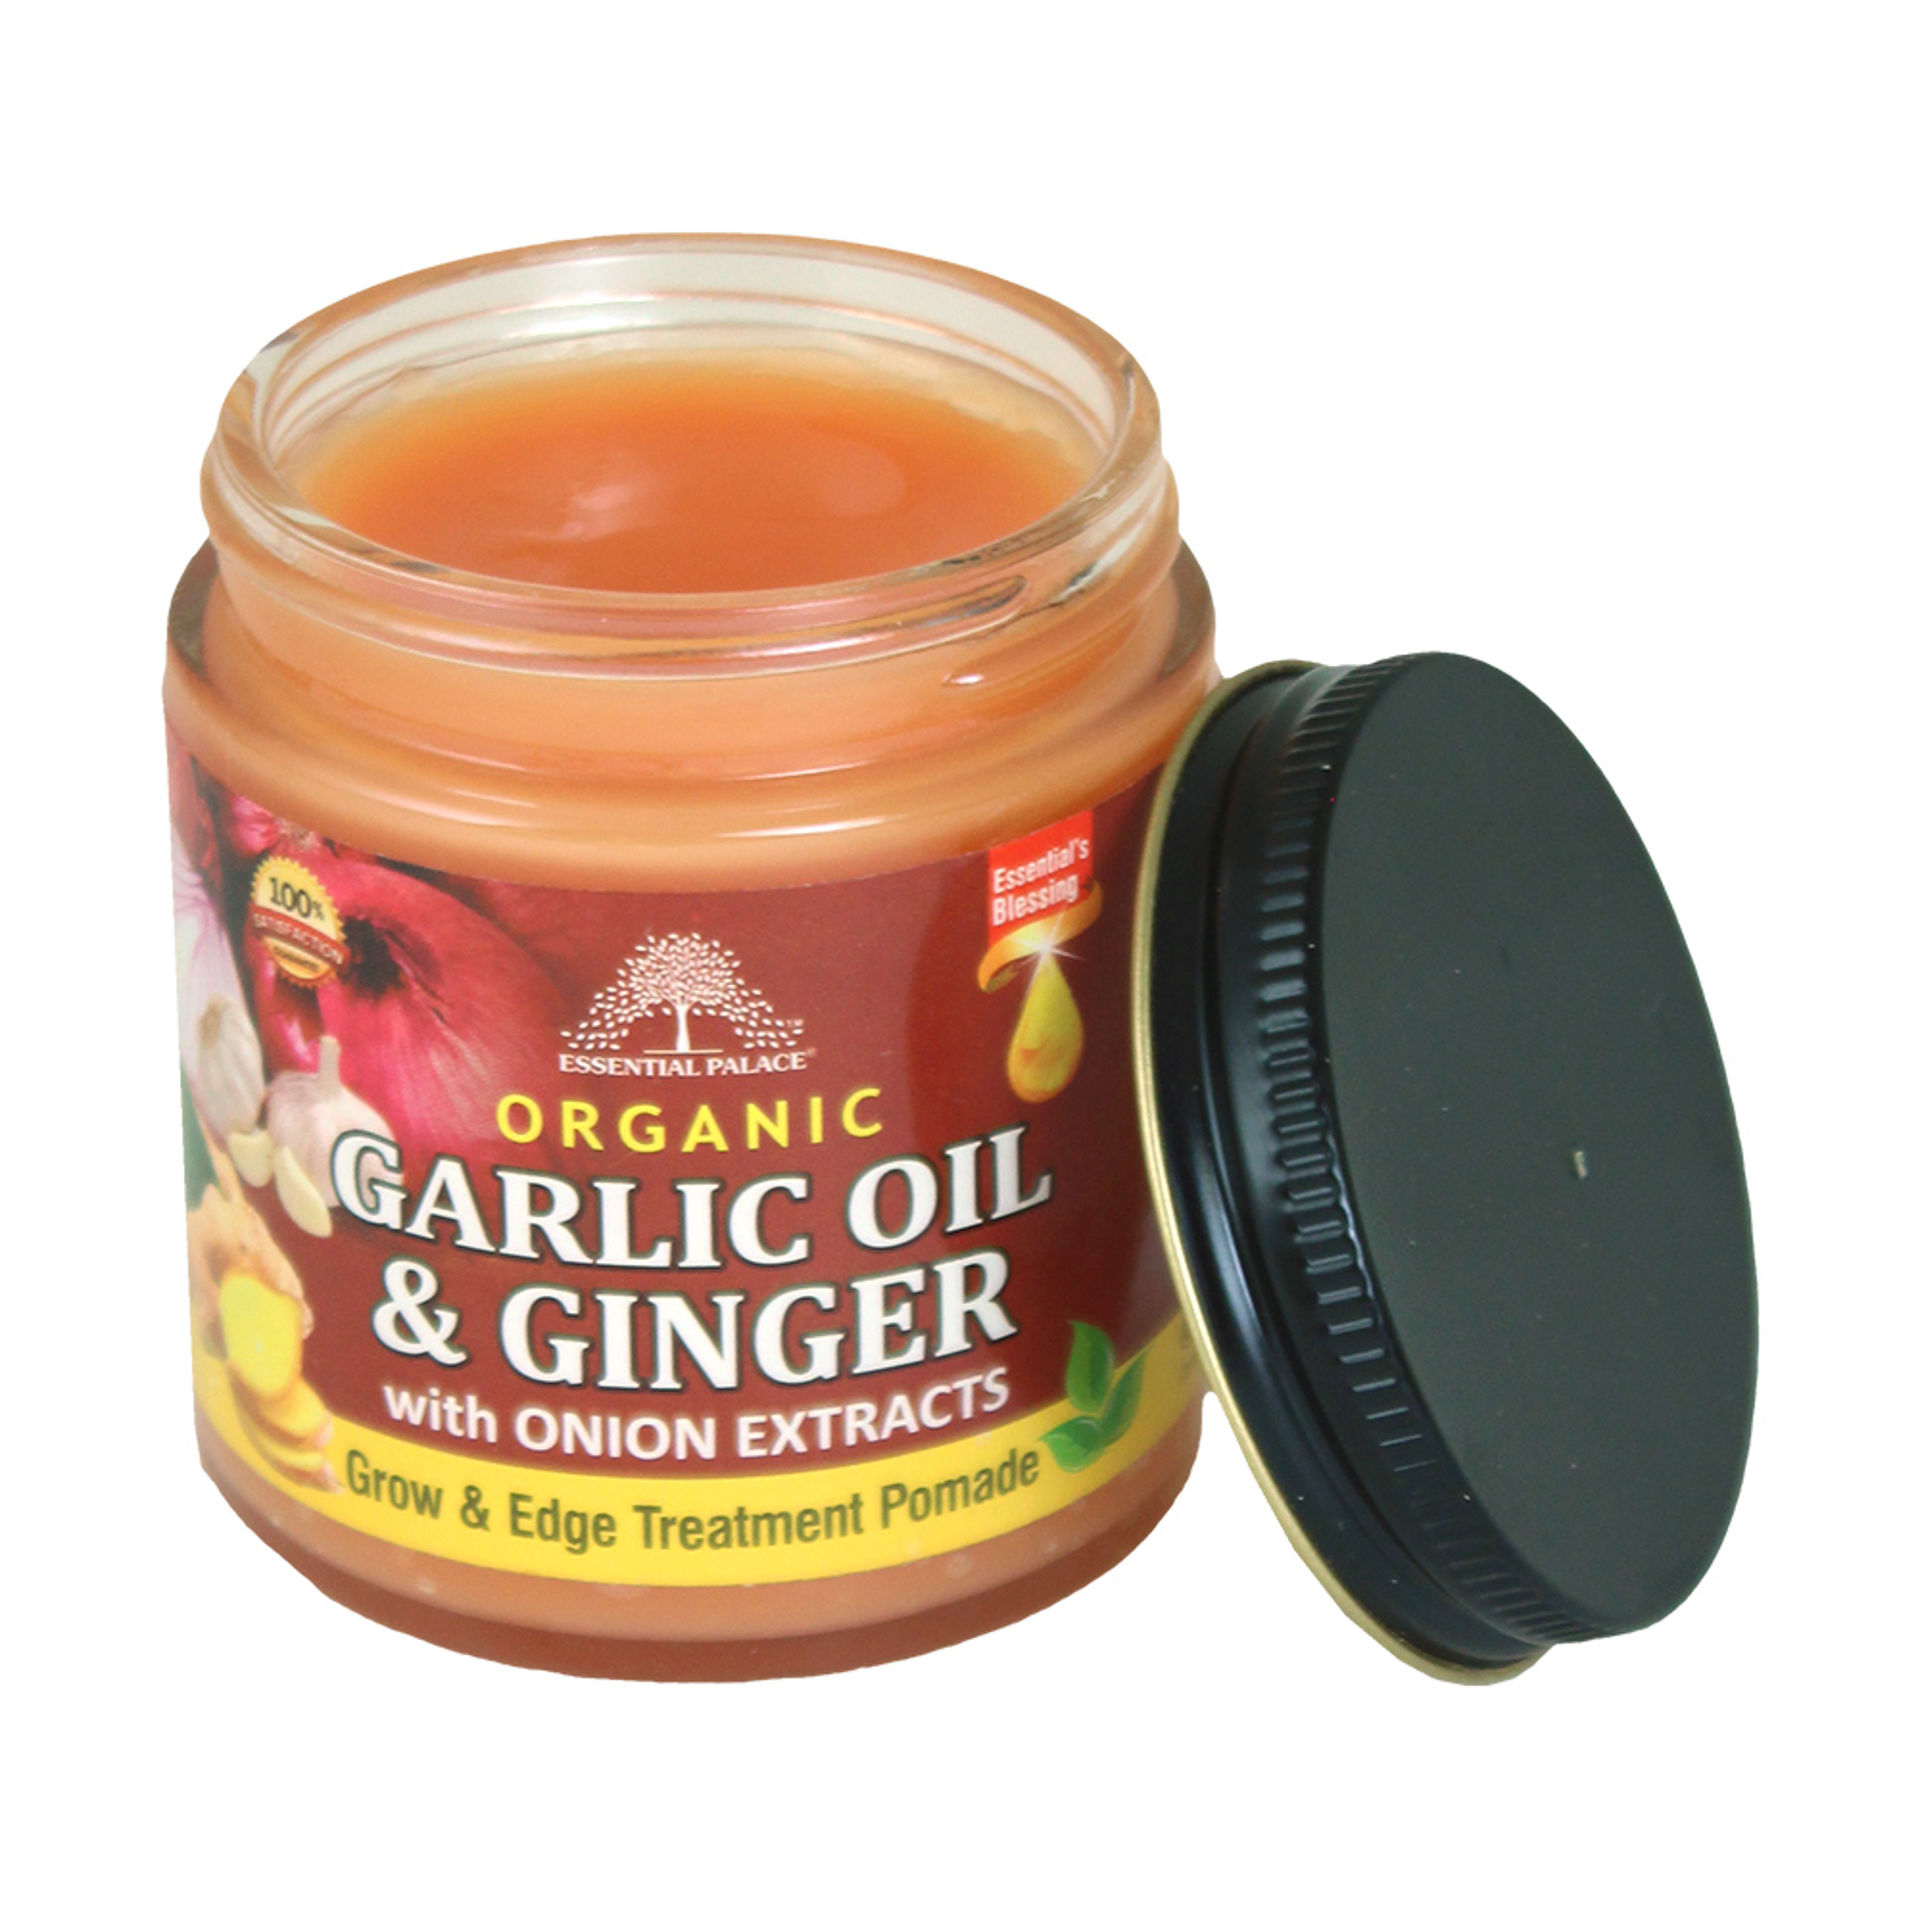 Picture of Organic Garlic Oil & Ginger Hair Pomade